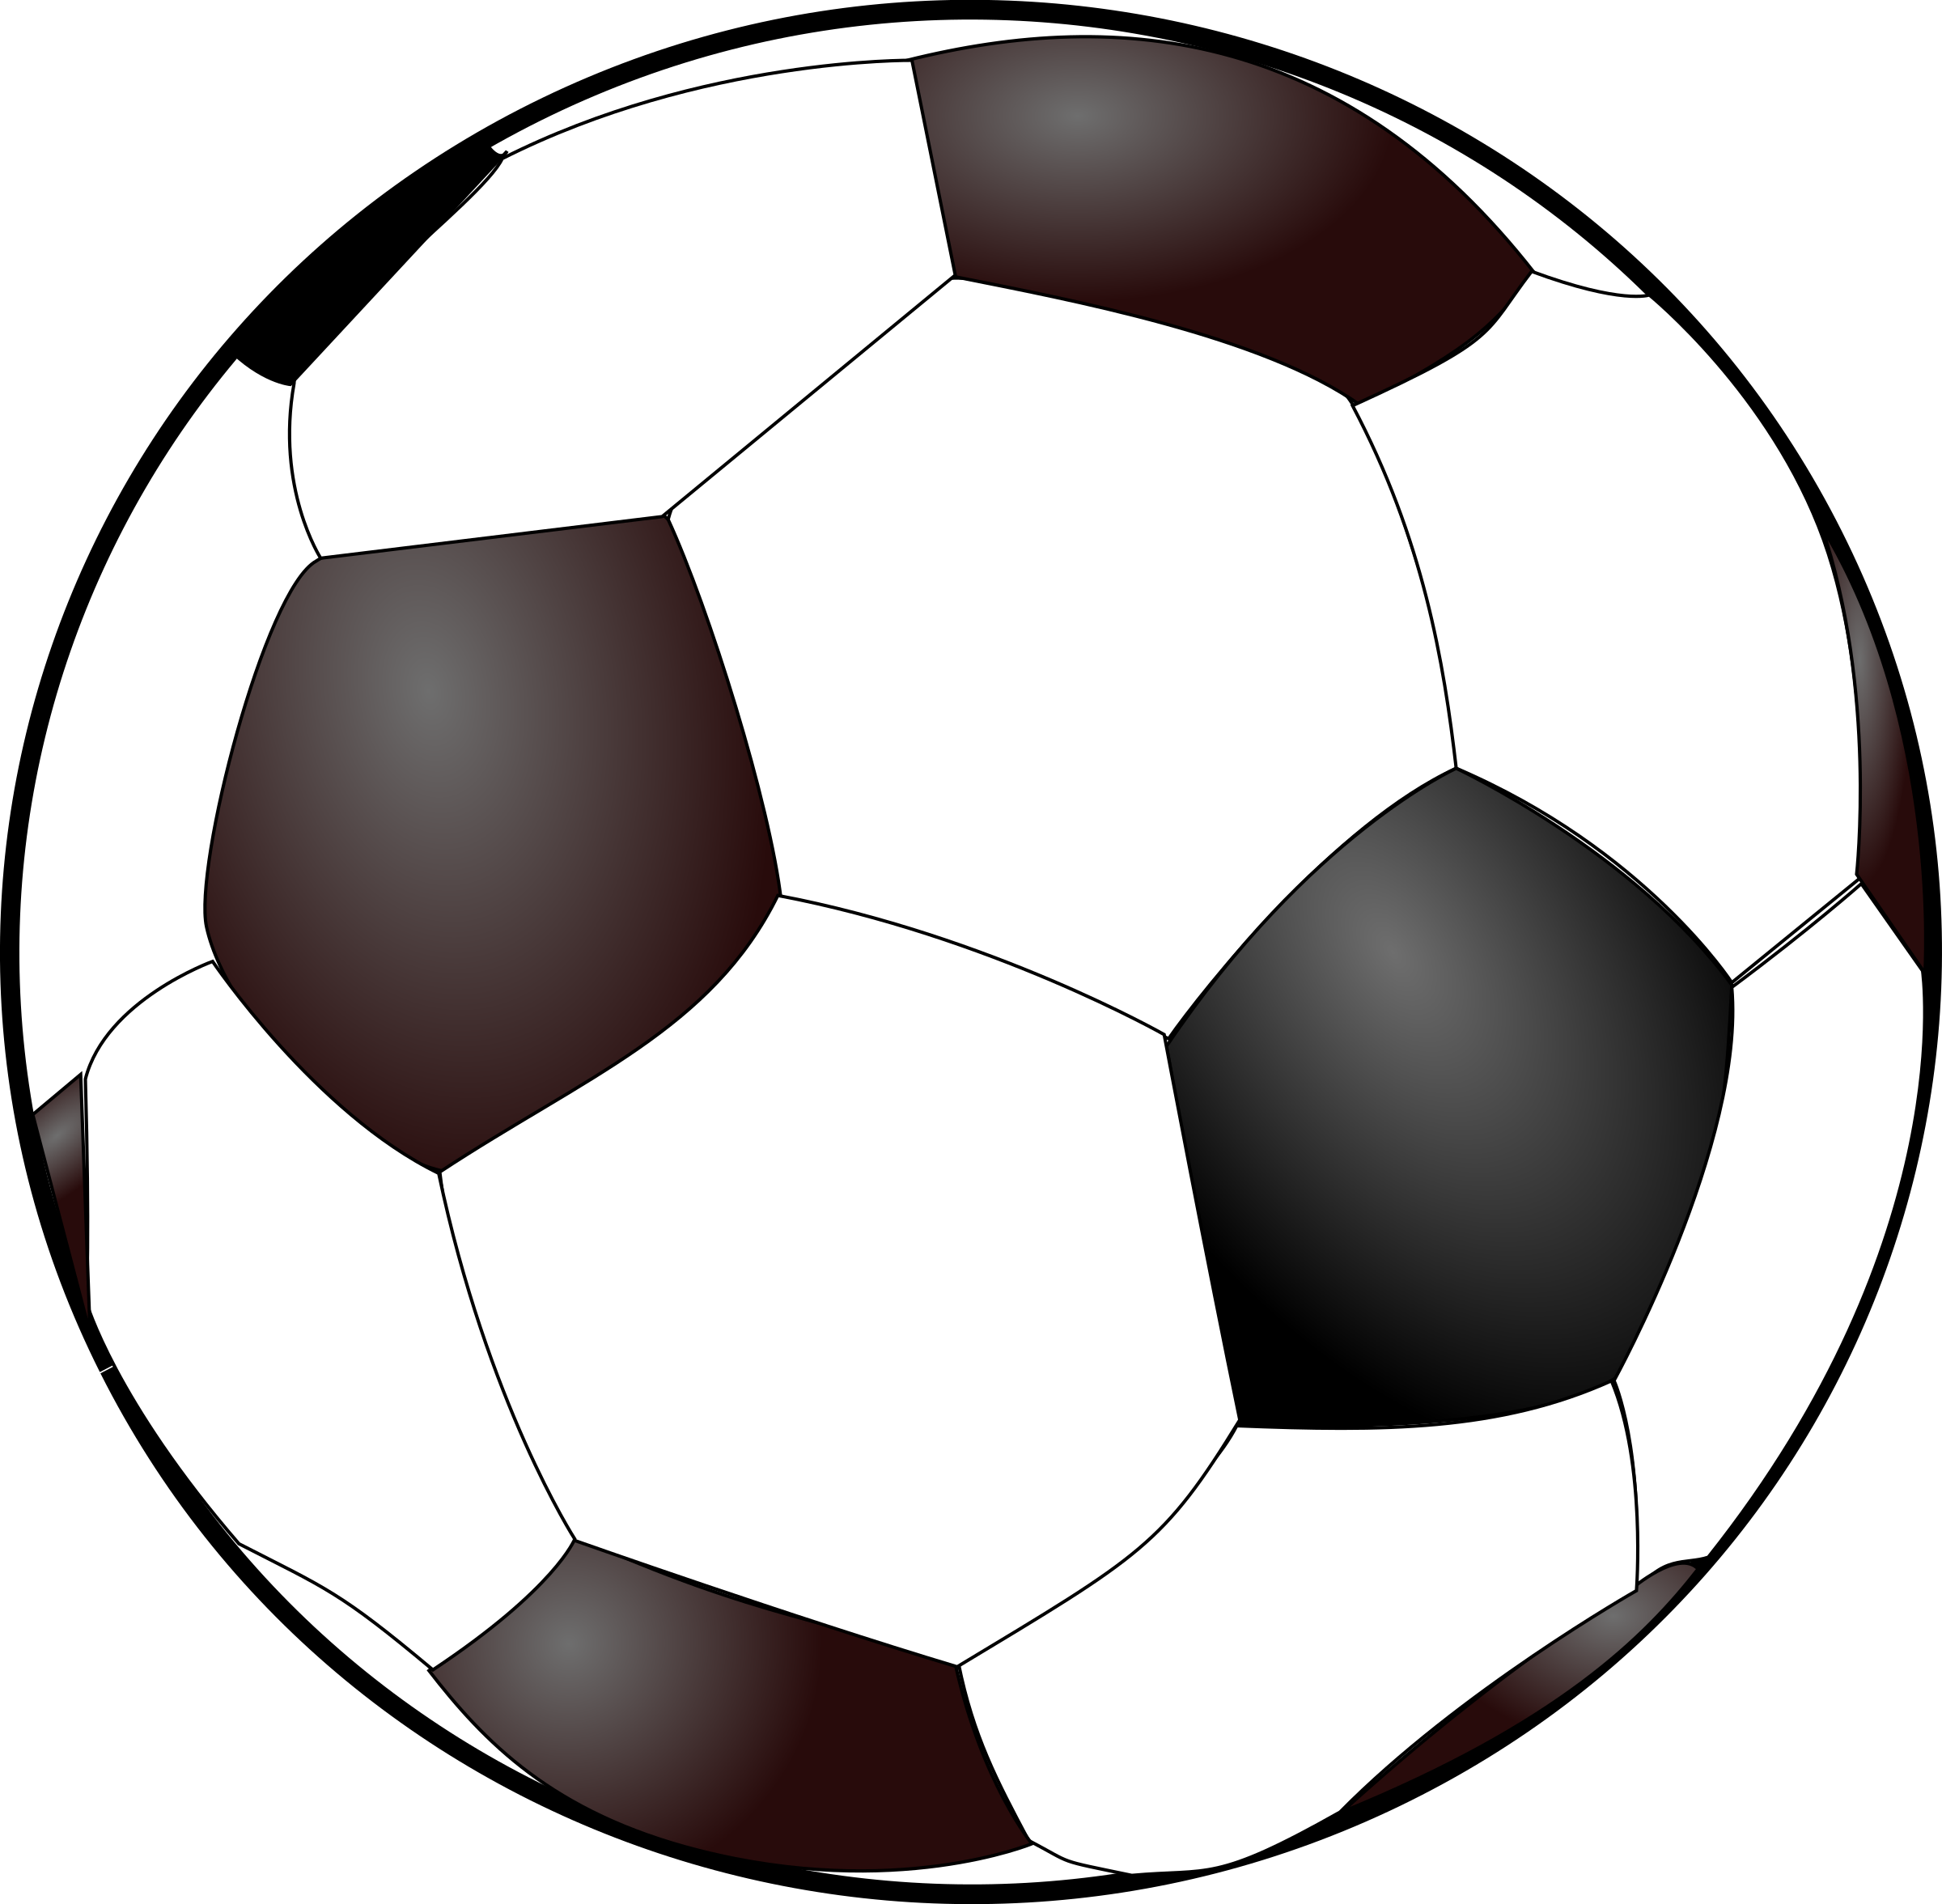 Football whistle clipart clipart freeuse download Soccer (football) ball #football ball, #soccer ball, #ball ... clipart freeuse download